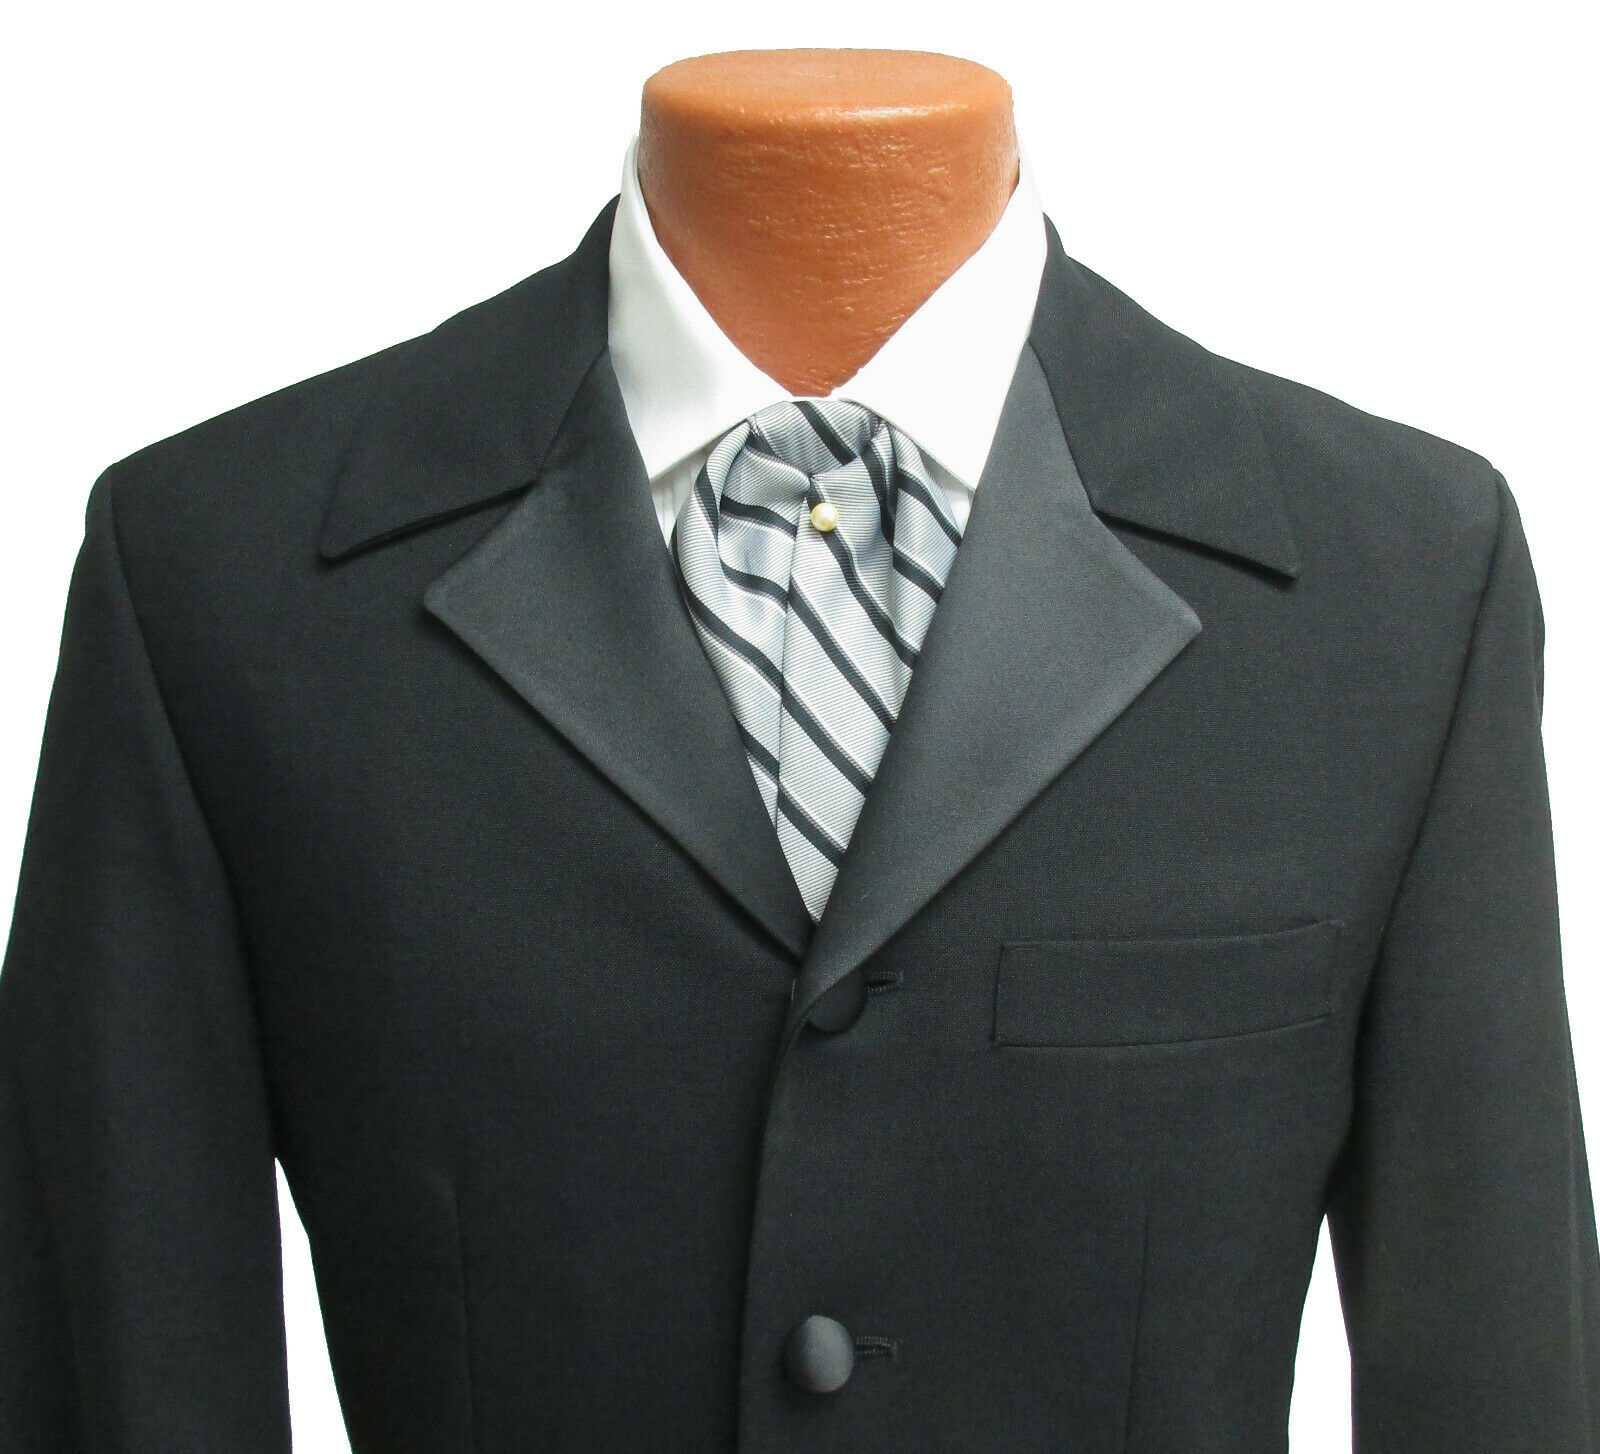 Black Tuxedo Jacket with Houndstooth Pants Steamp… - image 3